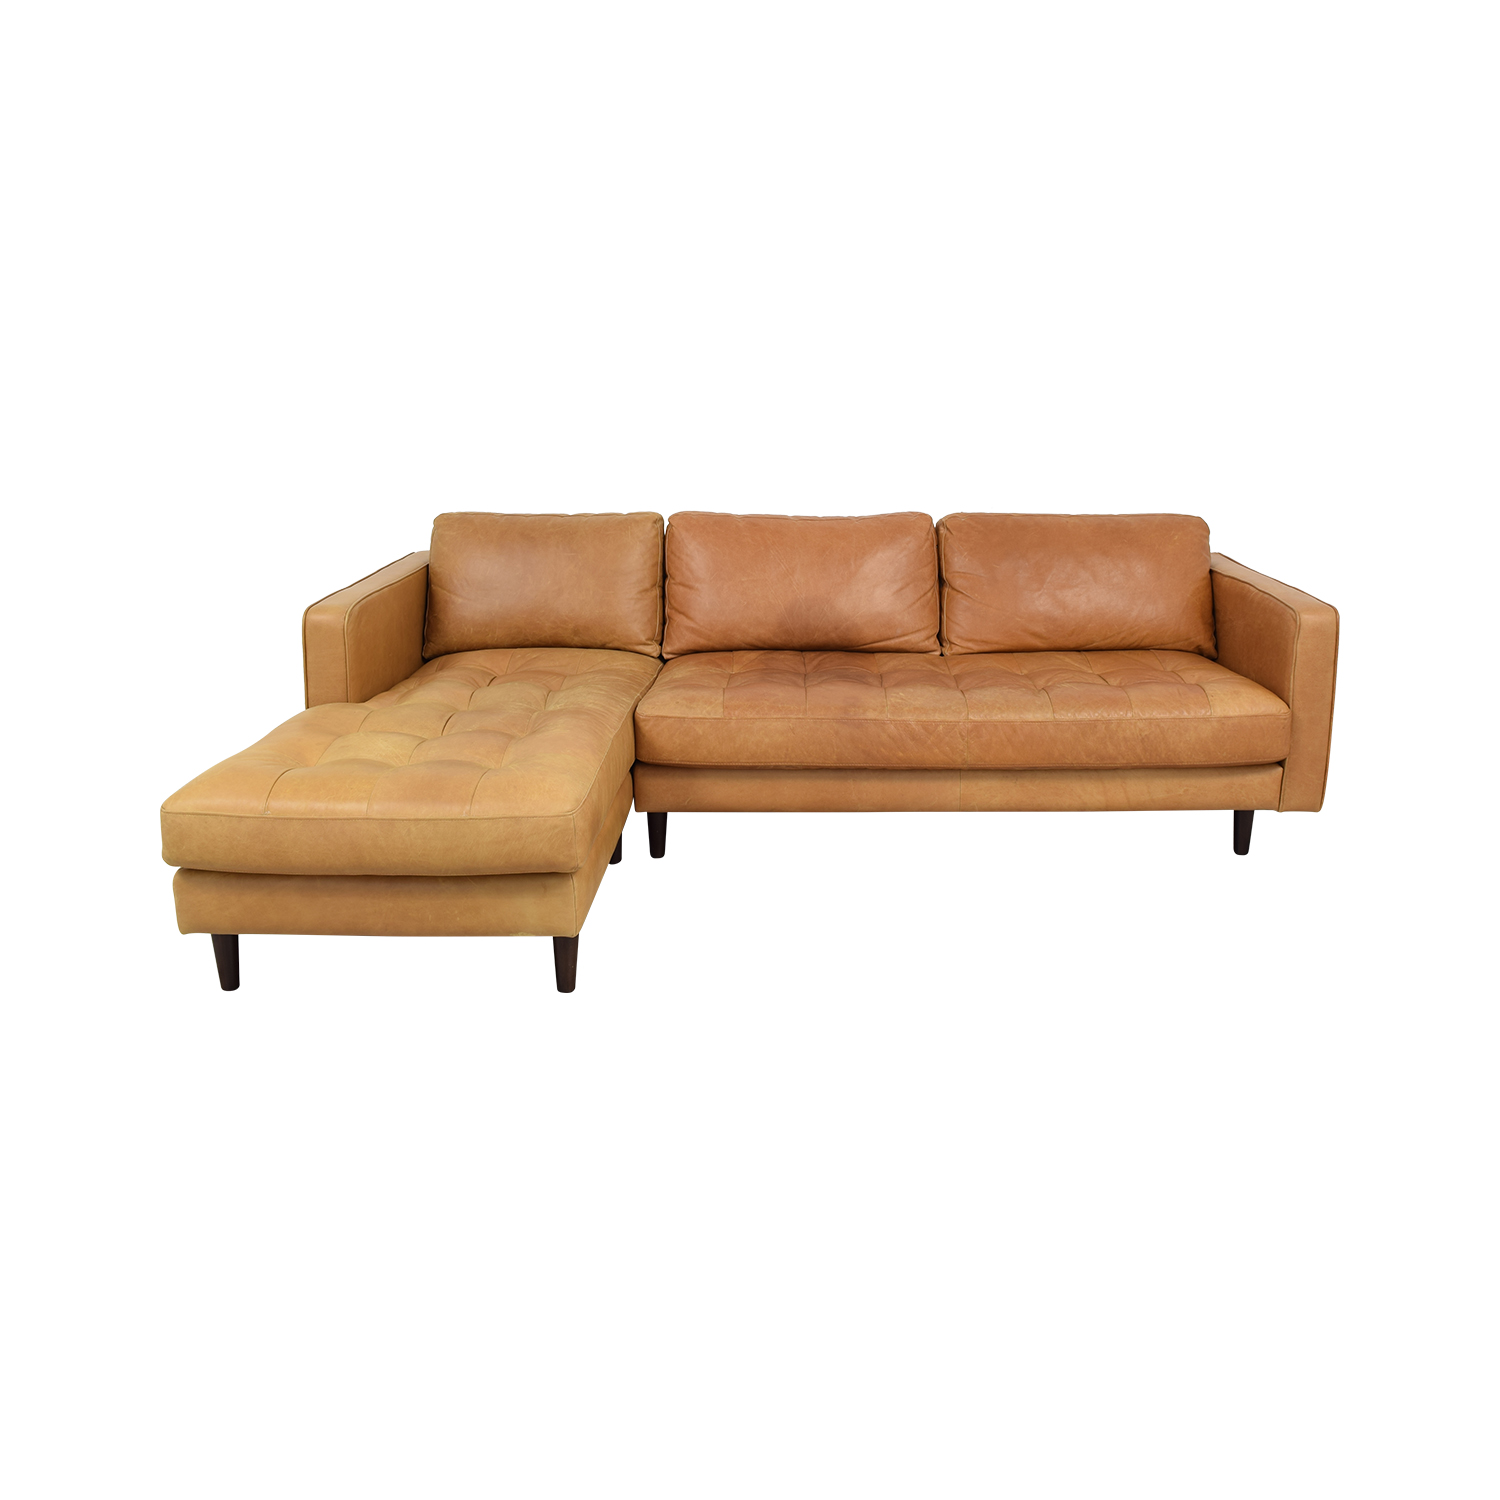 buy Article Article Sven Charme Sectional Sofa online